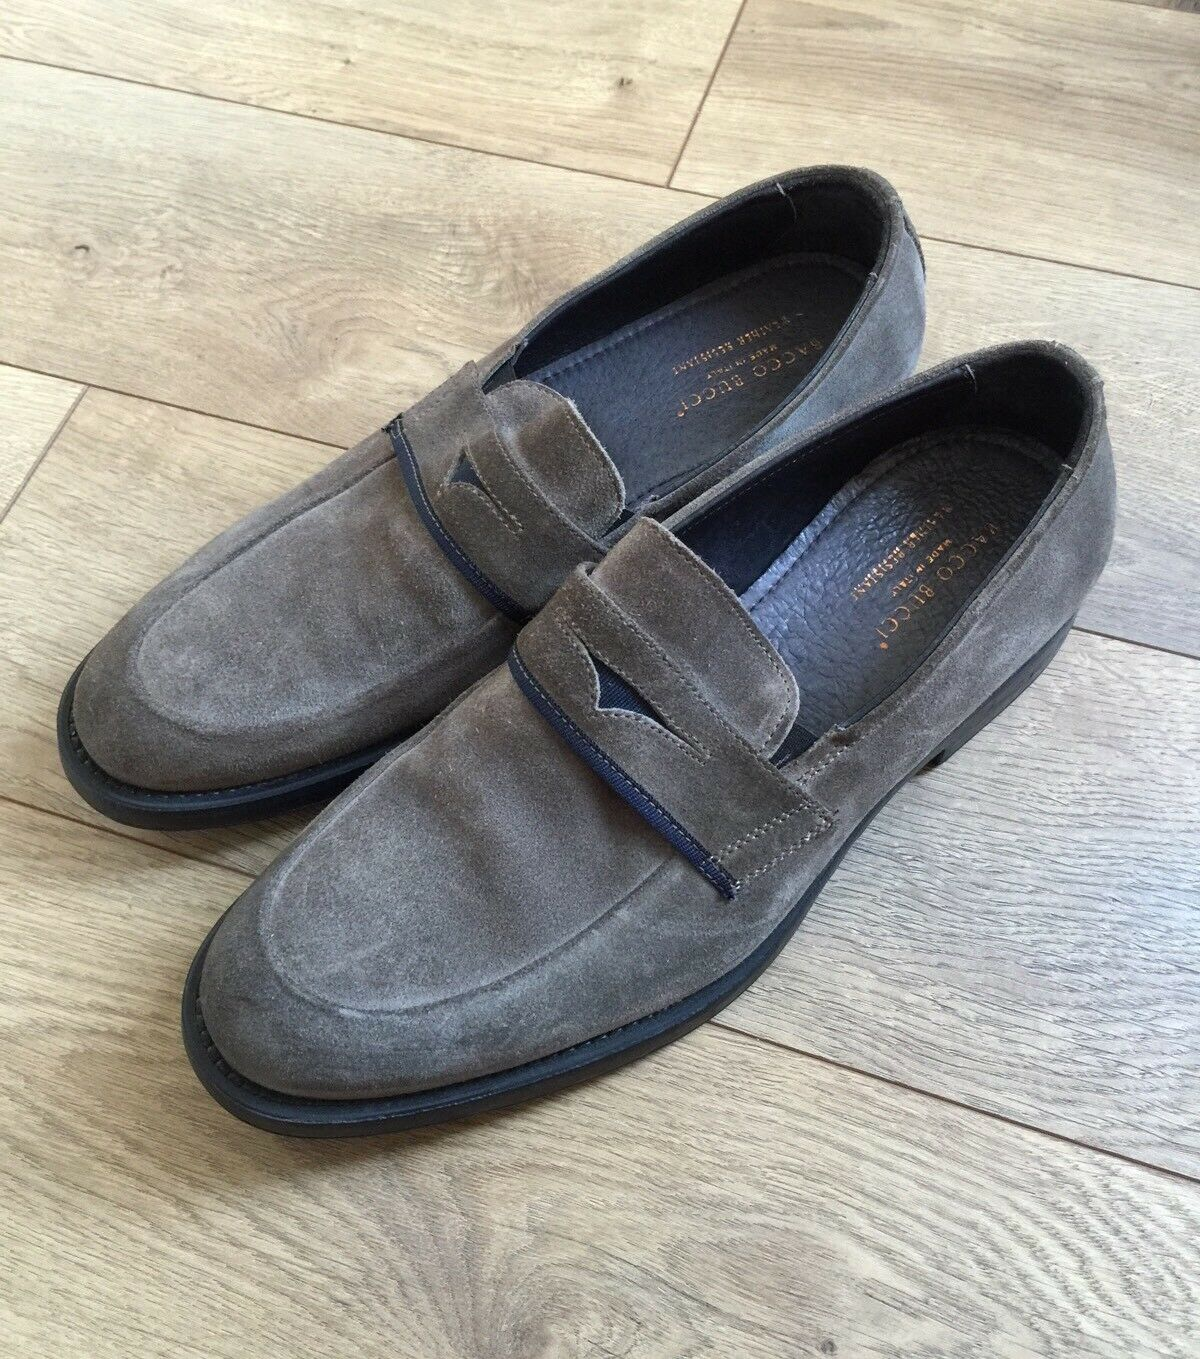 Scarpe casual da uomo  uomos Bacco Bucci Suede Slip On Loafers Shoes size 9.5 Olive Grey